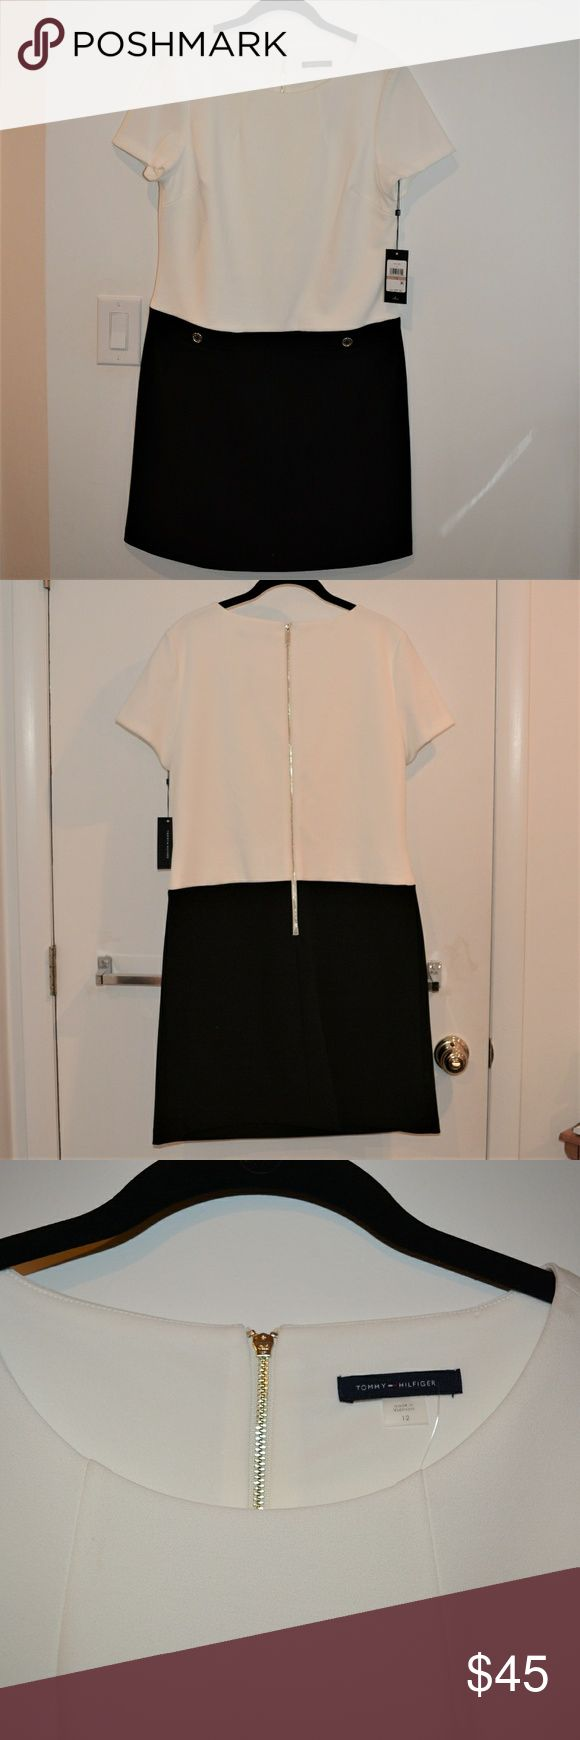 Tommy Hilfiger Black and White Dress NWT Tommy Hilfiger Black and White Dress  Size 12 Never worn Tommy Hilfiger Dresses Mini